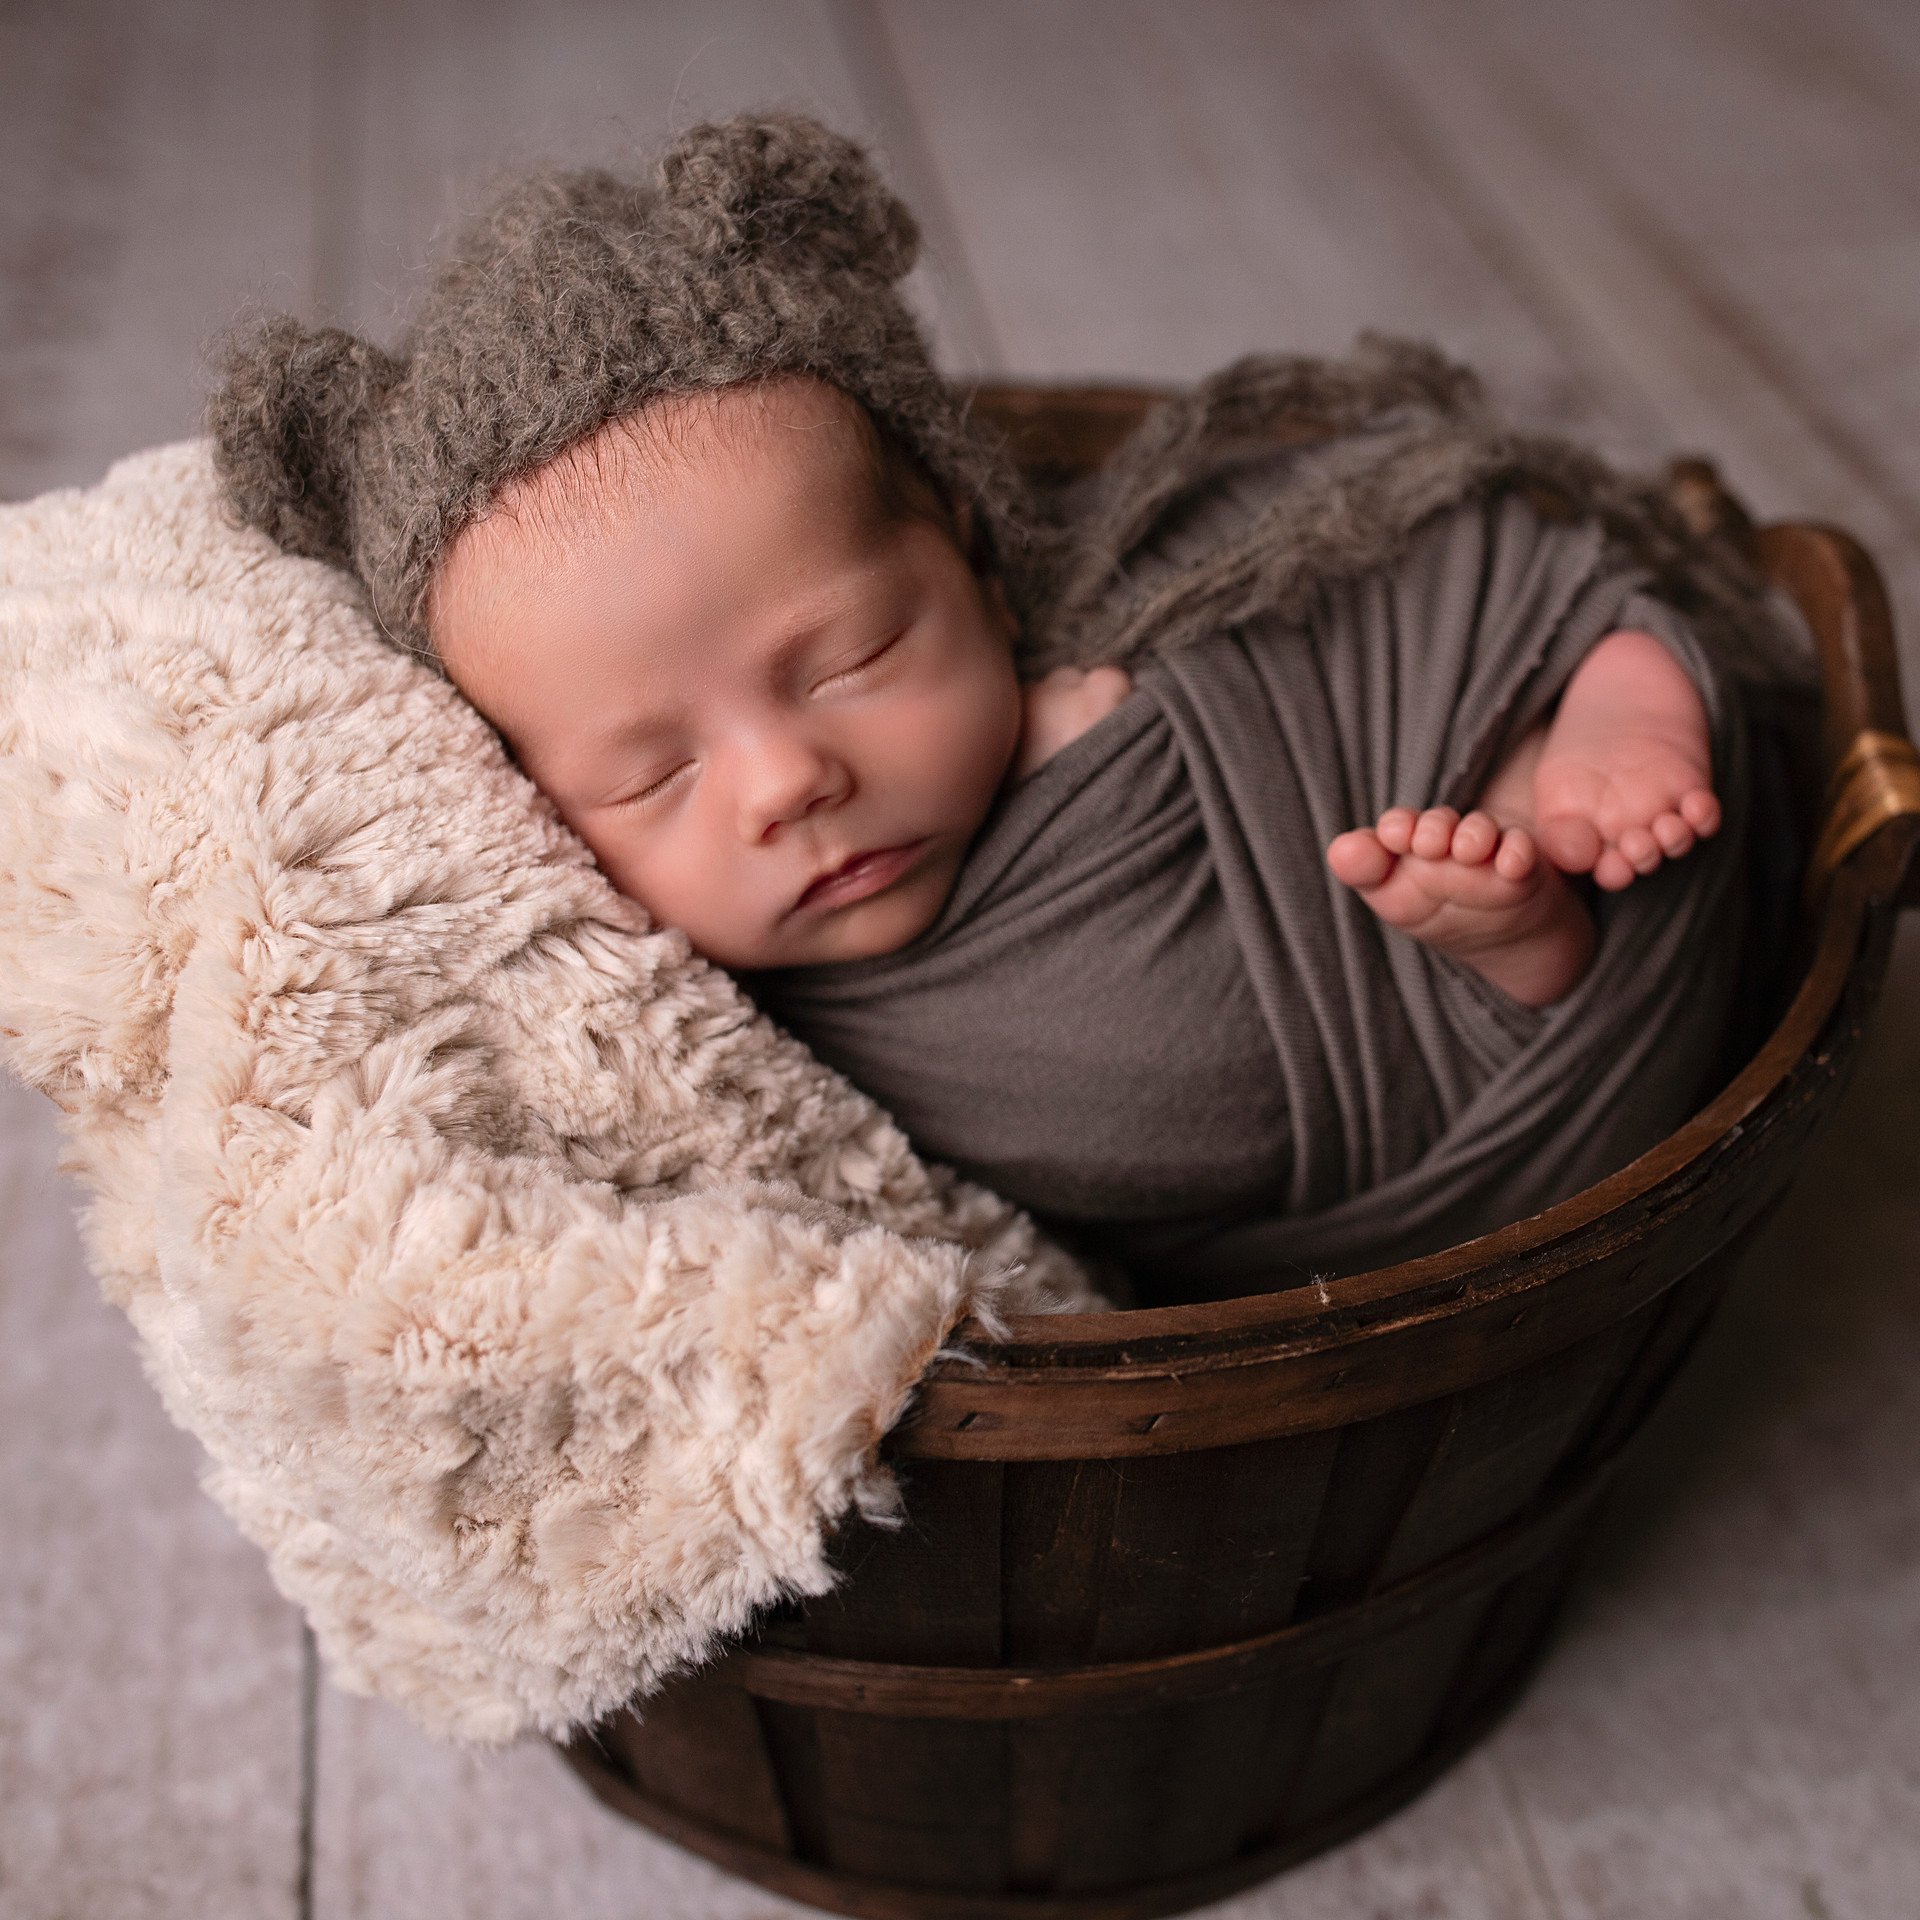 Newborn Session - Baby Photographer - So